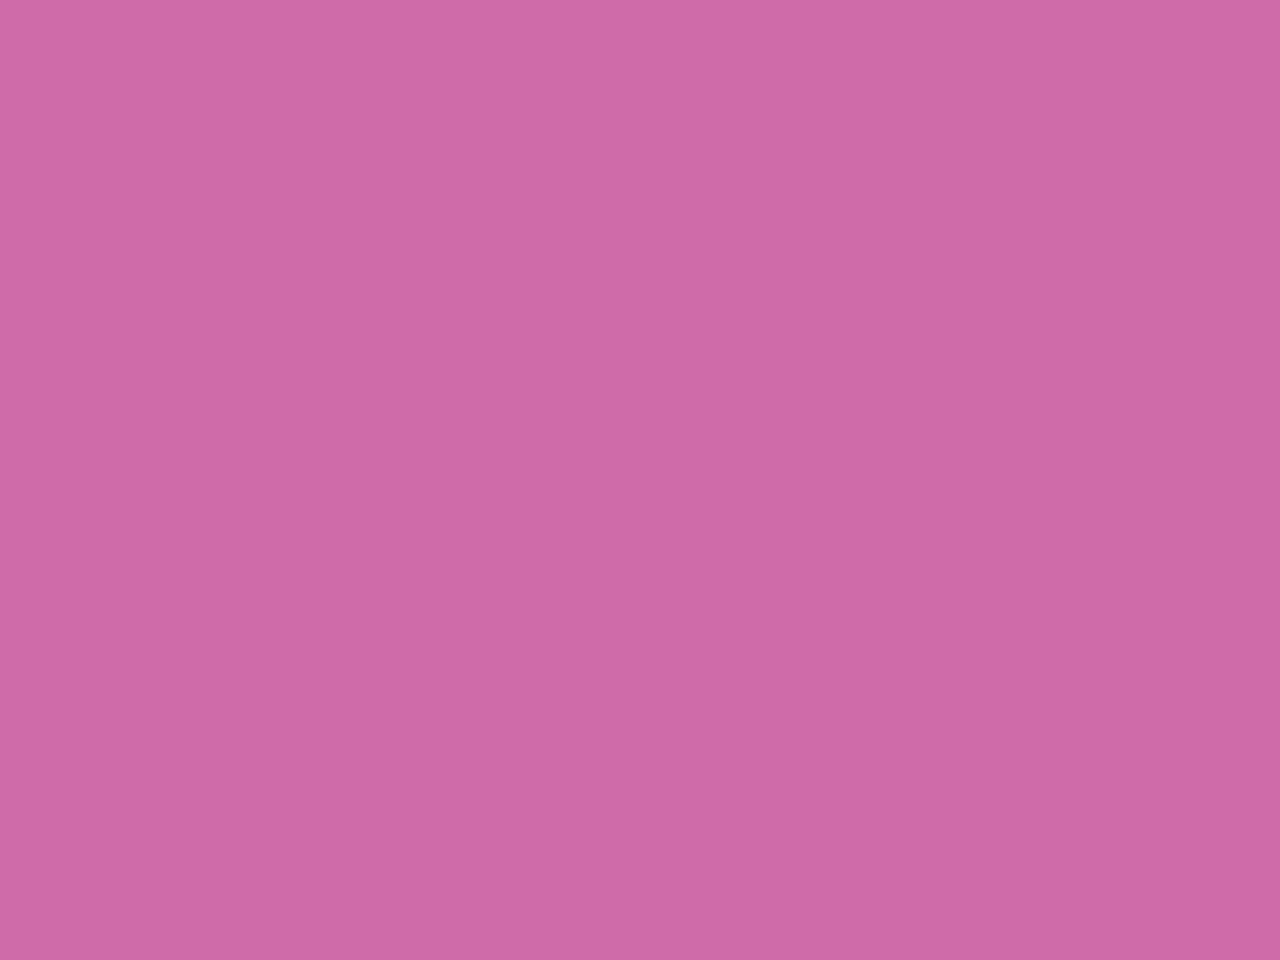 1280x960 Super Pink Solid Color Background